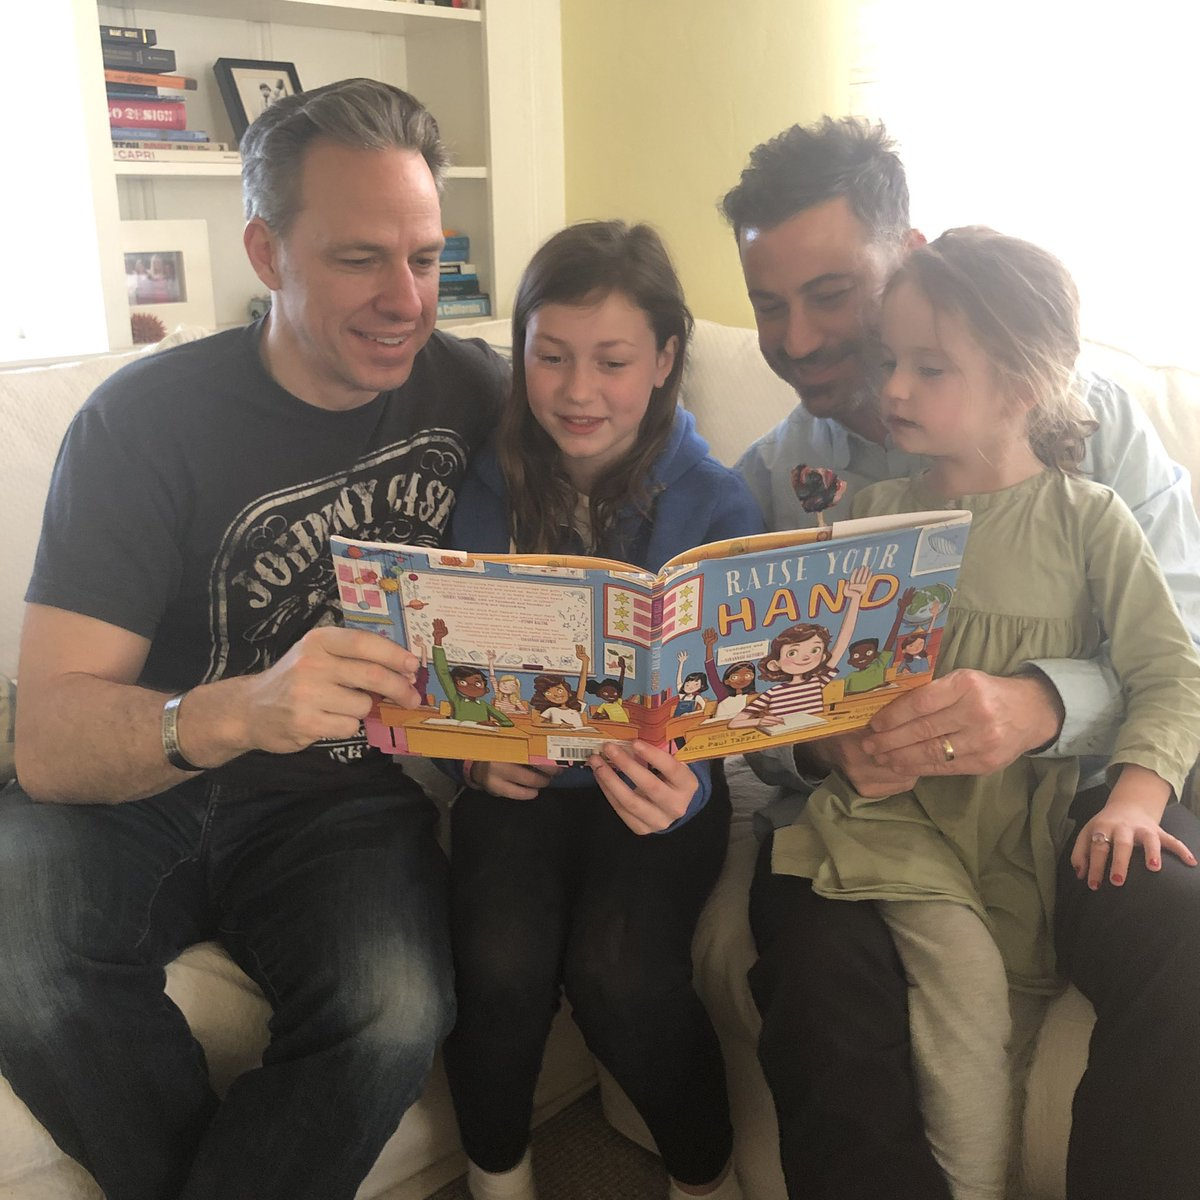 """Jane loves Alice Tapper's new book (as does Dad @jaketapper) support the Girl Scouts @GSCNC and get it here  """"Raise Your Hand"""" https://www.amazon.com/dp/1524791202/ref=cm_sw_r_cp_api_i_TYyLCb50ATQP0…"""